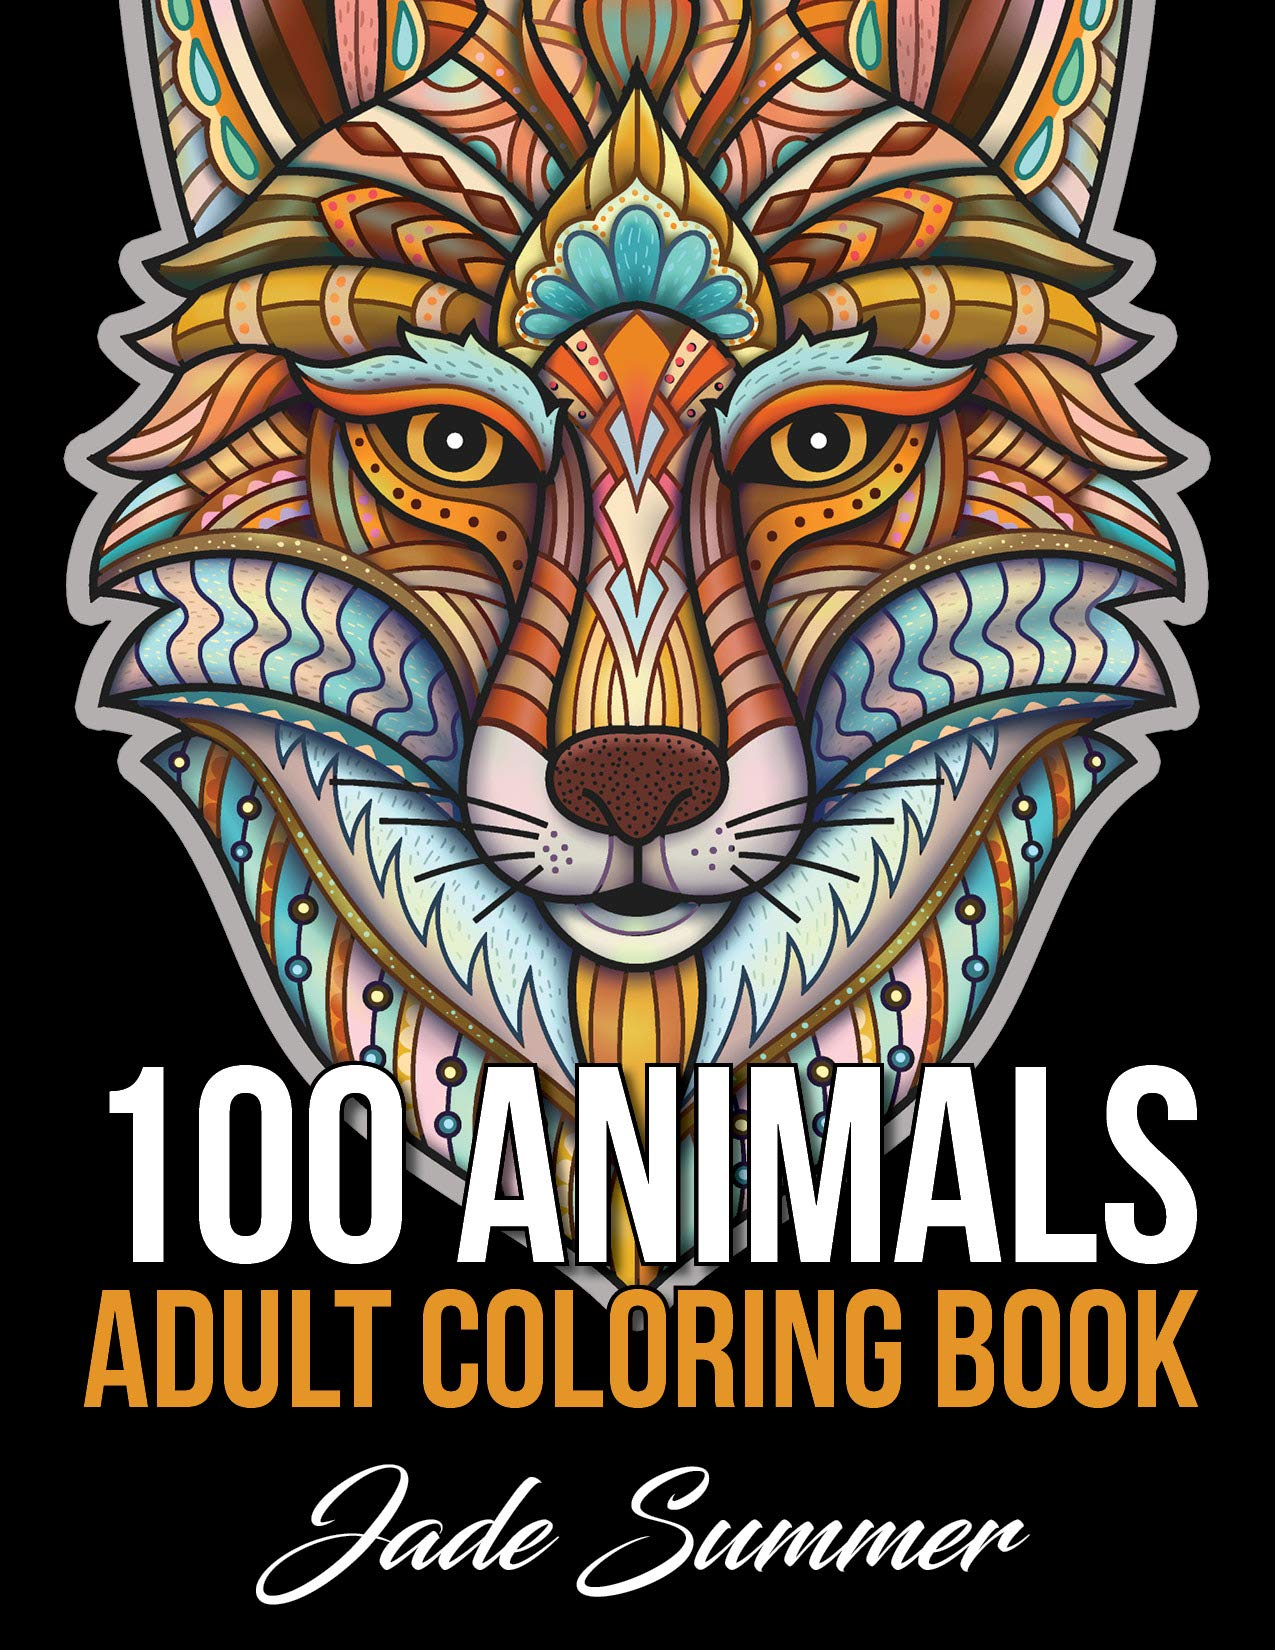 100 Animals Coloring Elephants Horses product image